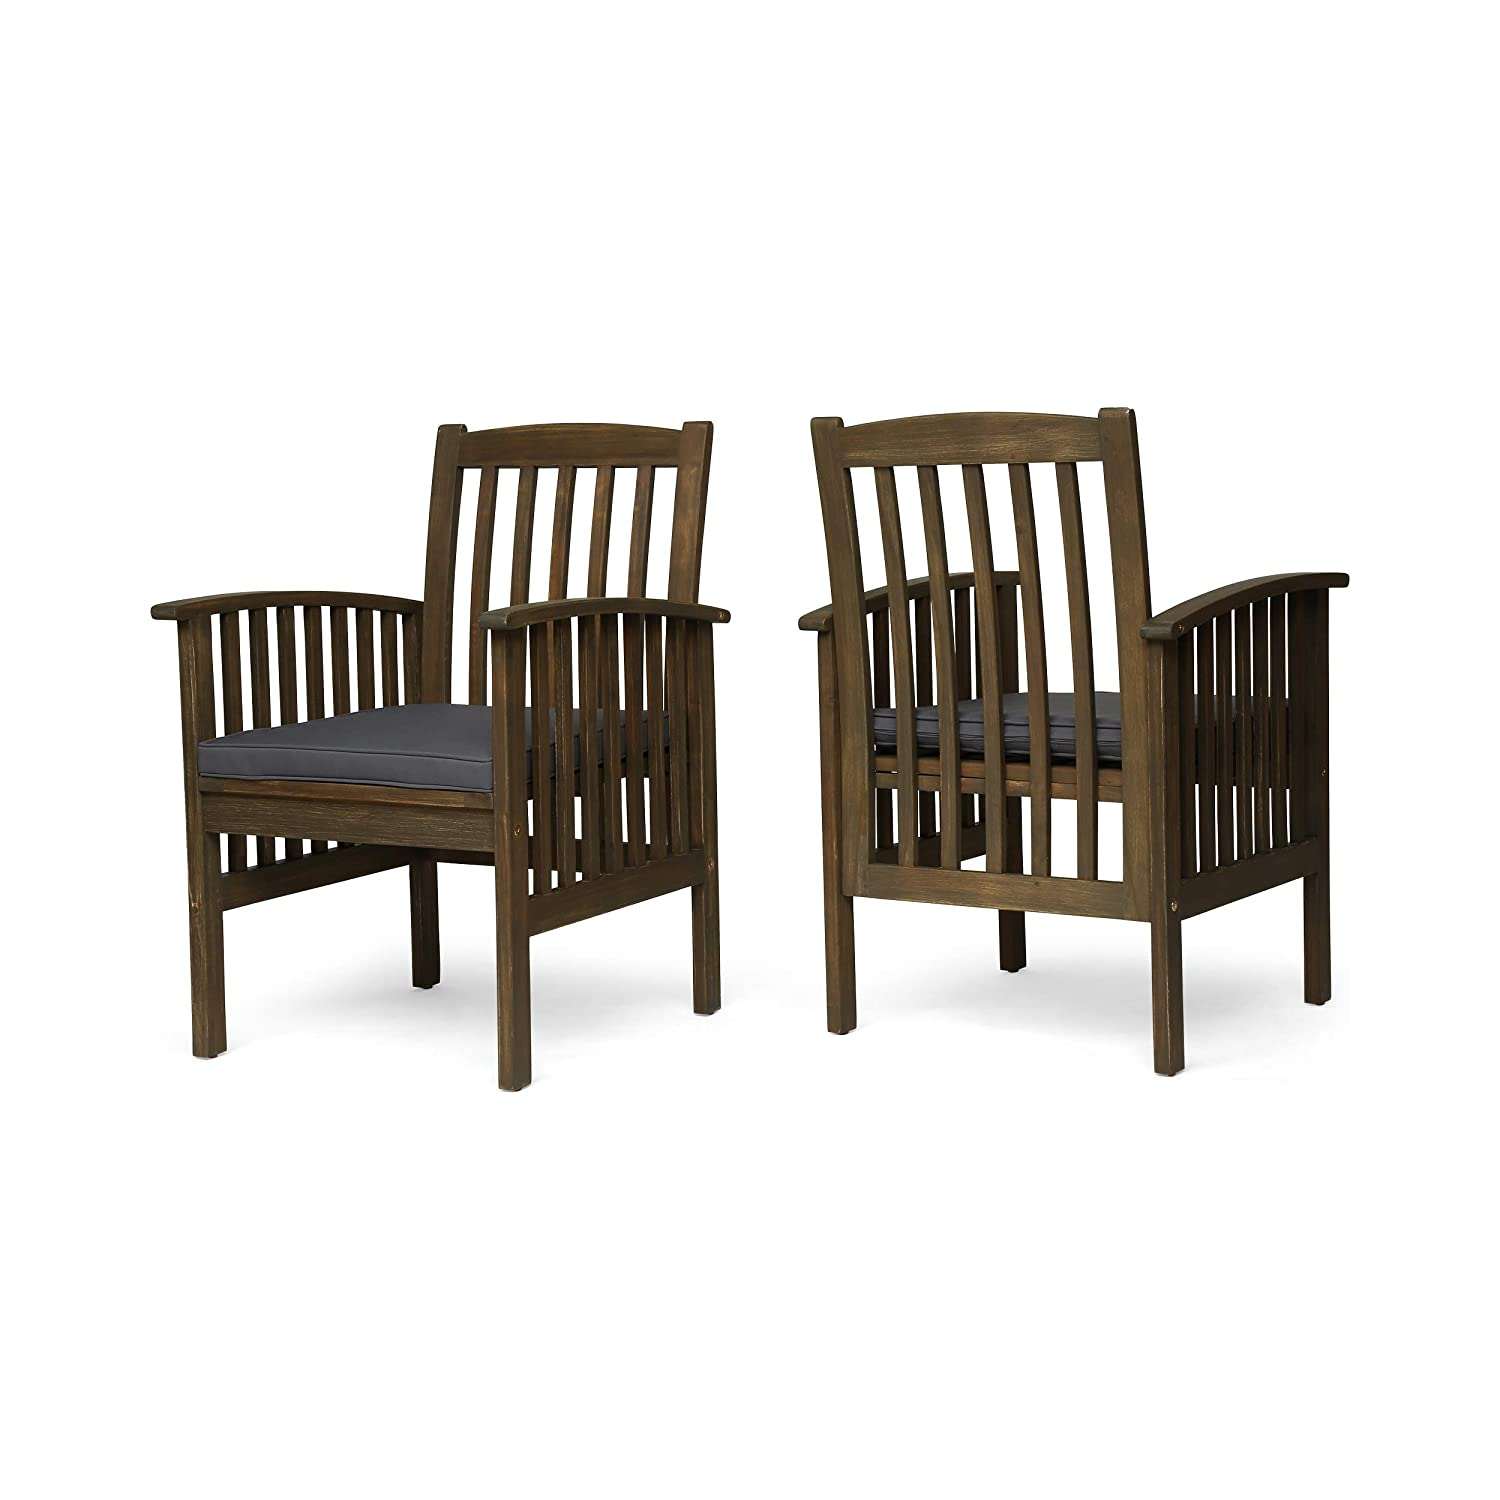 Amazon com great deal furniture phoenix acacia patio dining chairs acacia wood with outdoor cushions gray and dark gray set of 2 garden outdoor